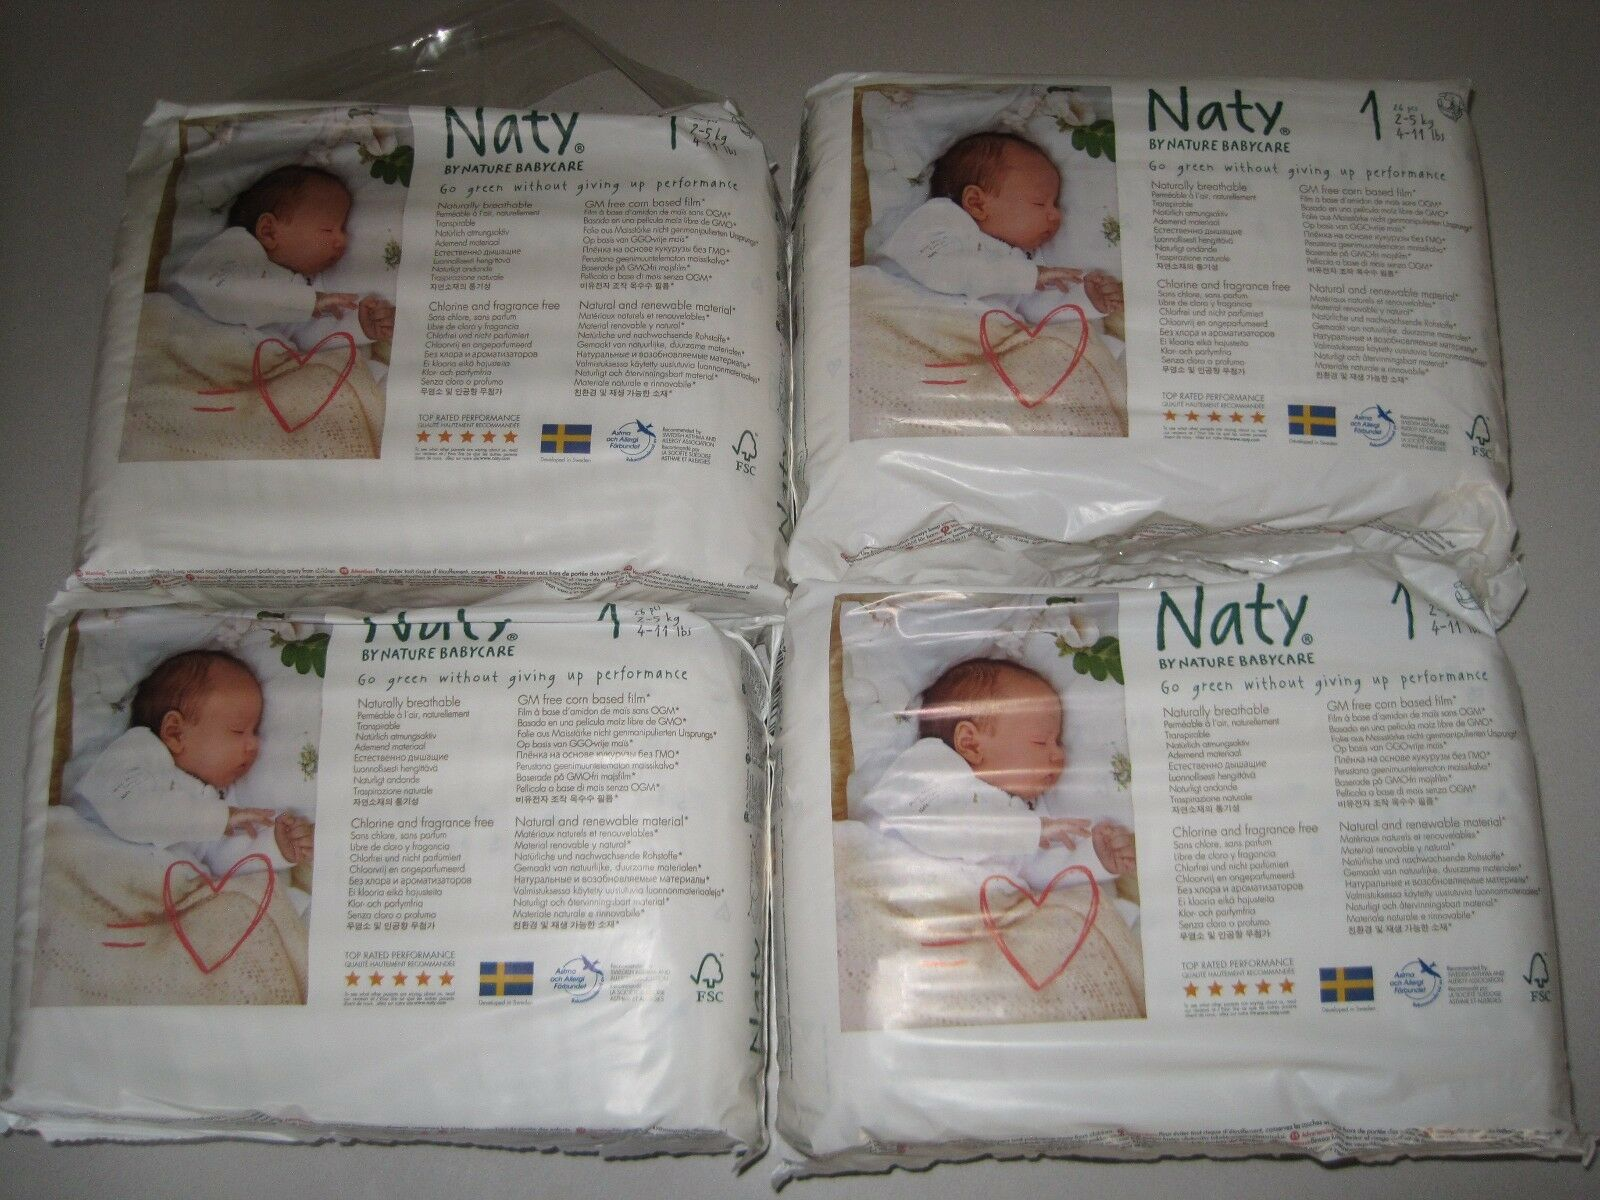 4 x Packs of 26 Naty by Nature Babycare Newborn Size 1 ECO Nappies 104 Nappies